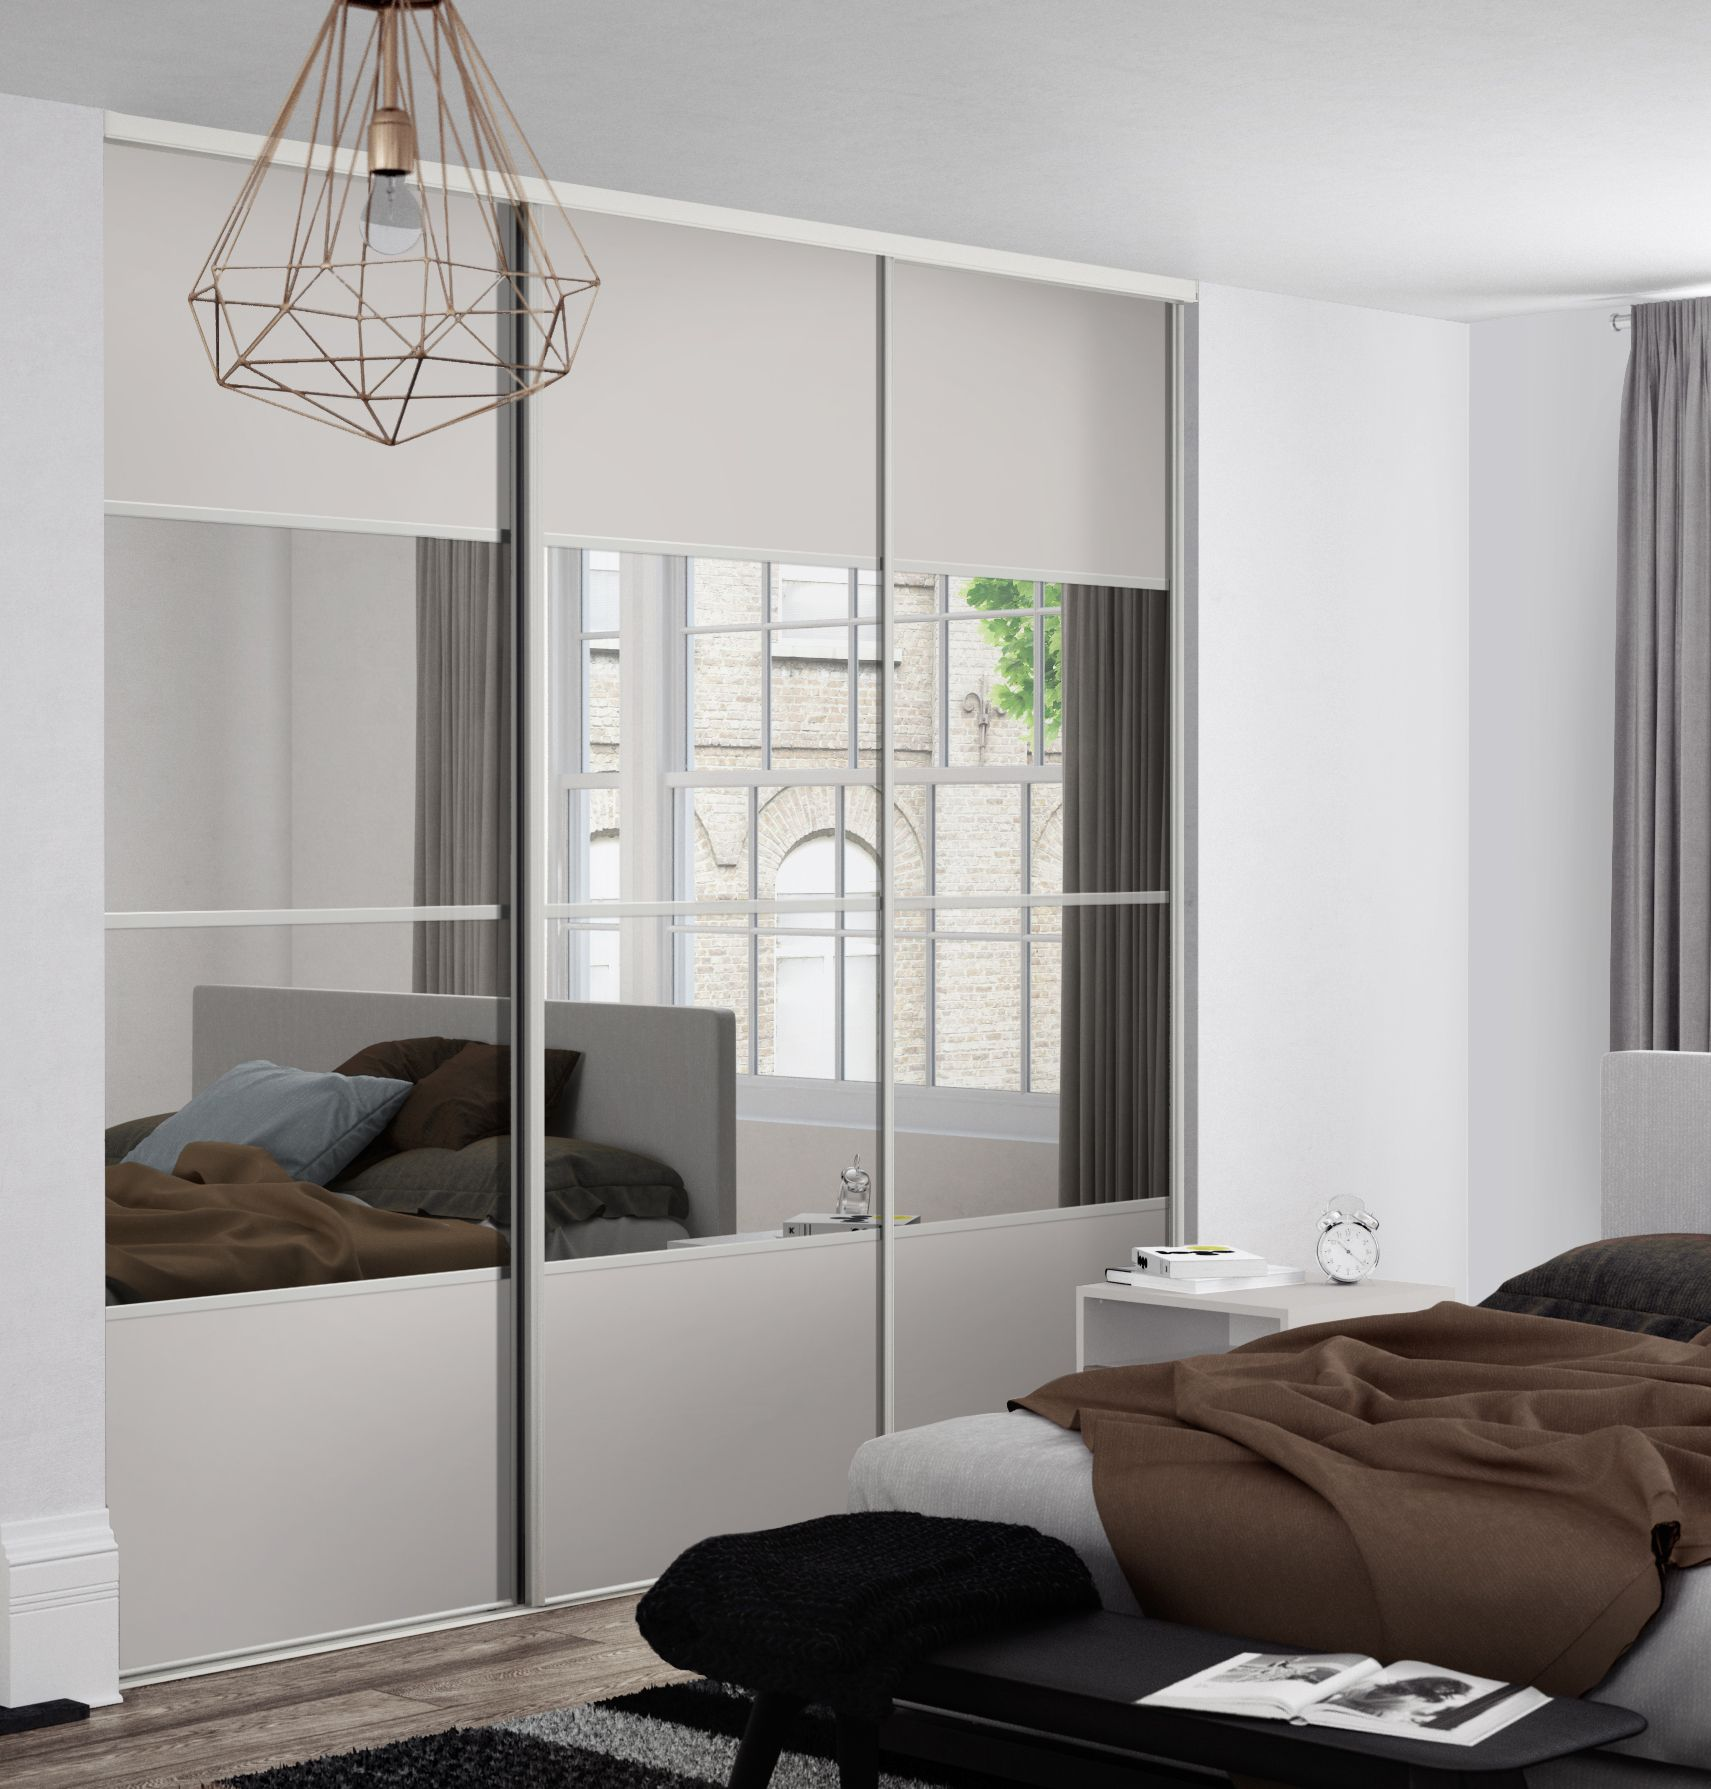 Classic 4 Panel Sliding Wardrobe Doors In Cashmere And Mirror Finish